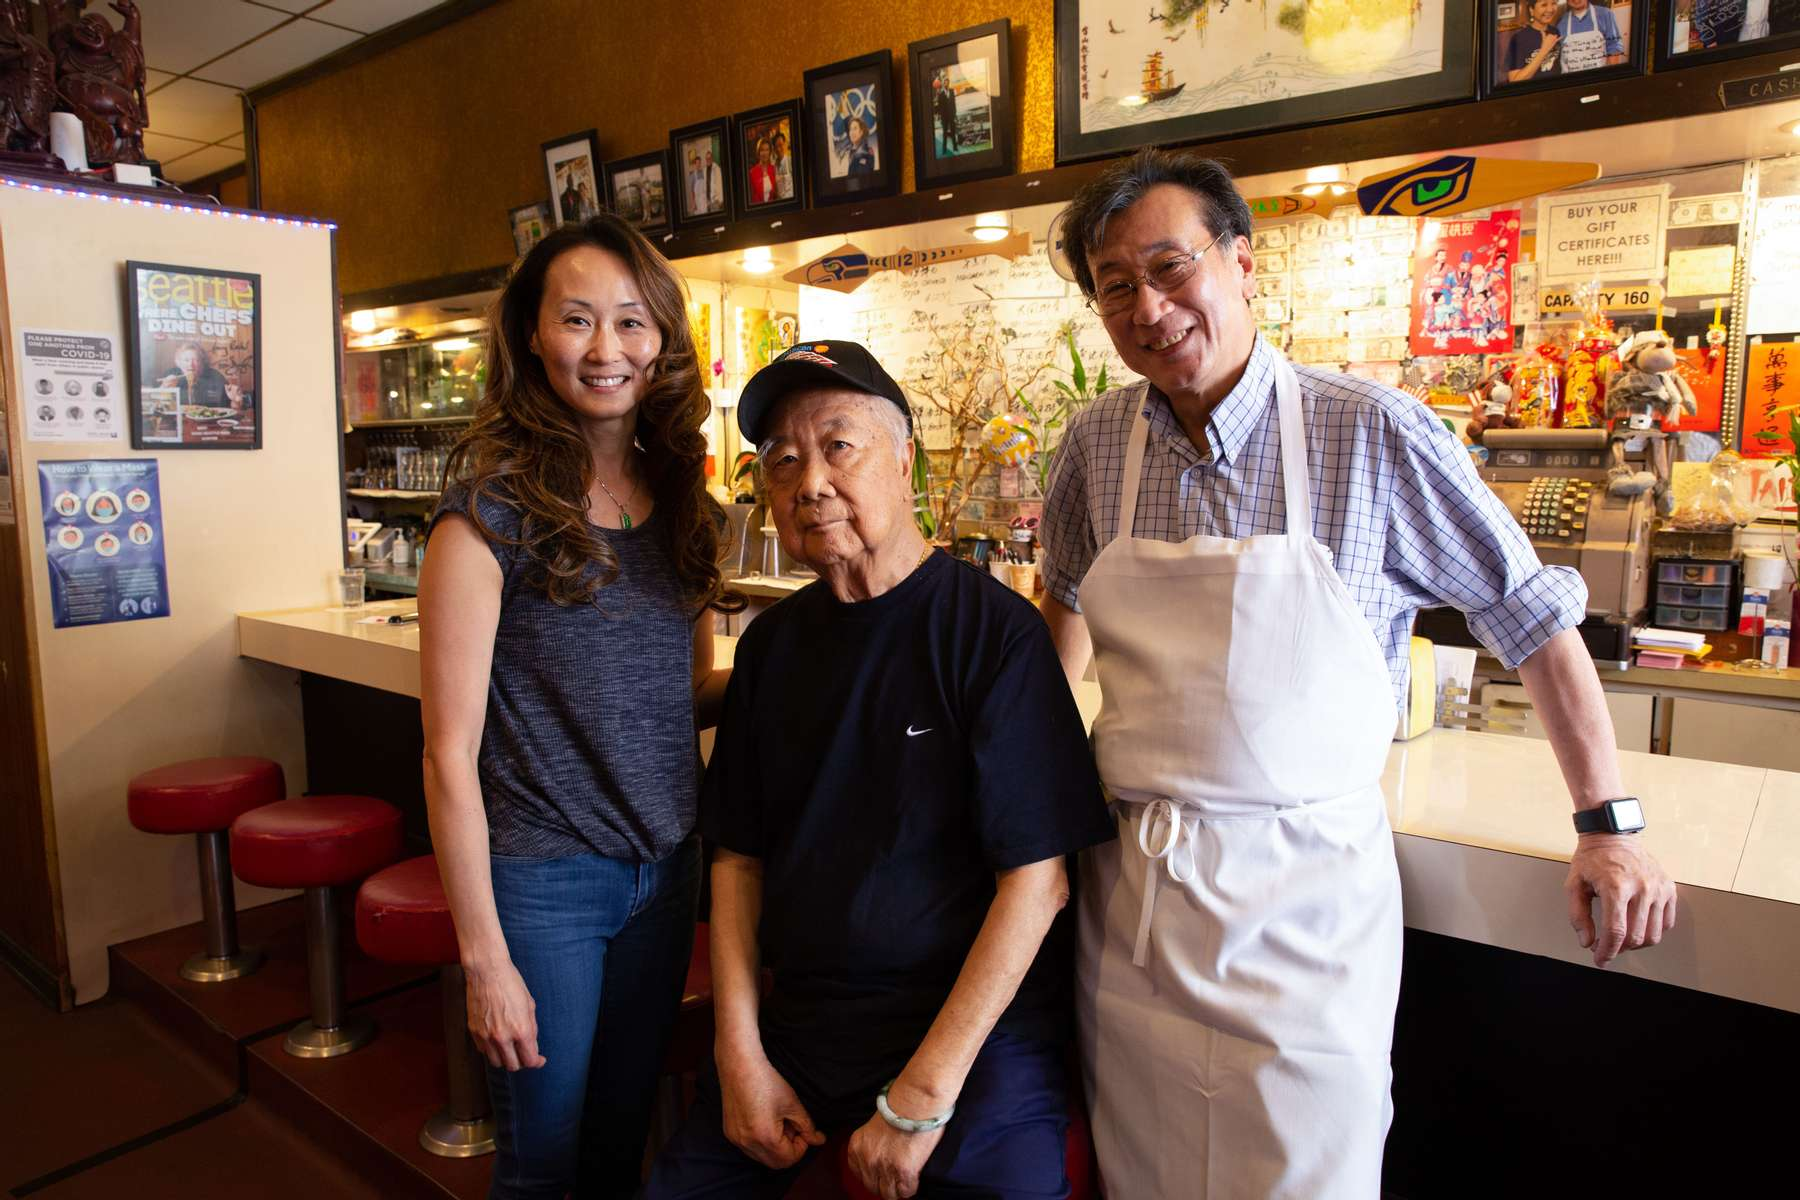 Harry Chan, his brother Tommy Quan and daughter Lisa Chan at the Tai Tung Restaurant in the Chinatown–International District in Seattle, Washington on July 20, 2020. Chan's restaurant was broken into three nights in a row last week. The Chan family has owned the restaurant since 1935.(photo by Karen Ducey)